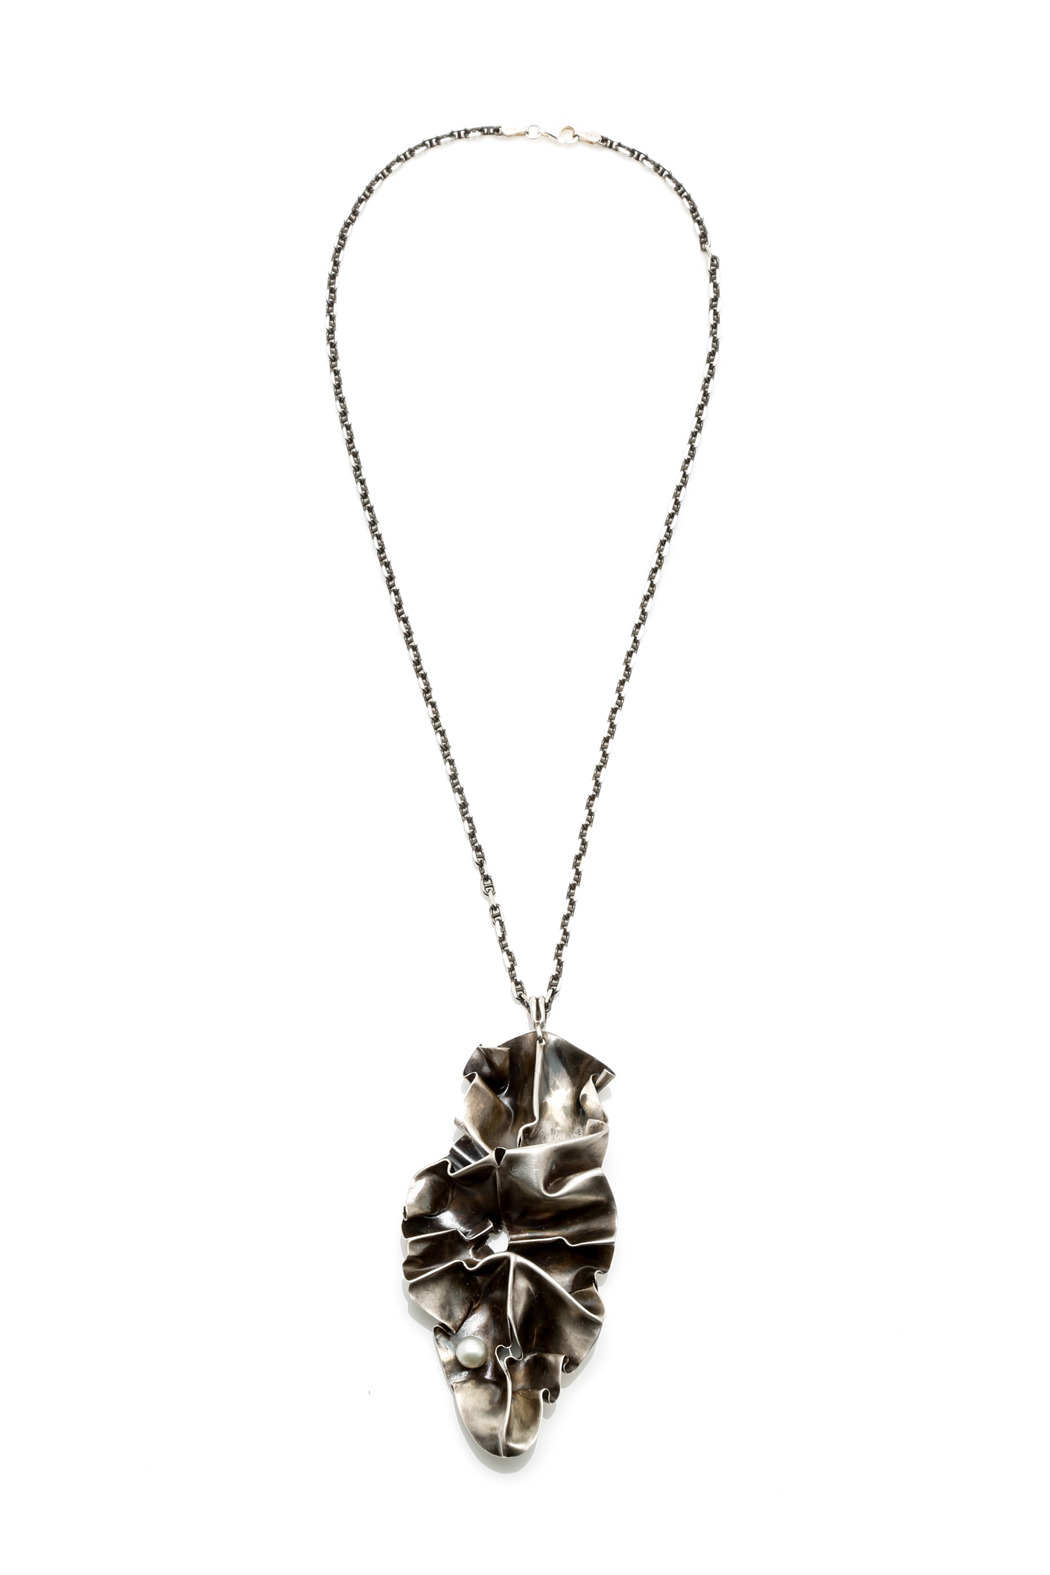 Lynn Costello Folded Silver Statement Necklace From Cape